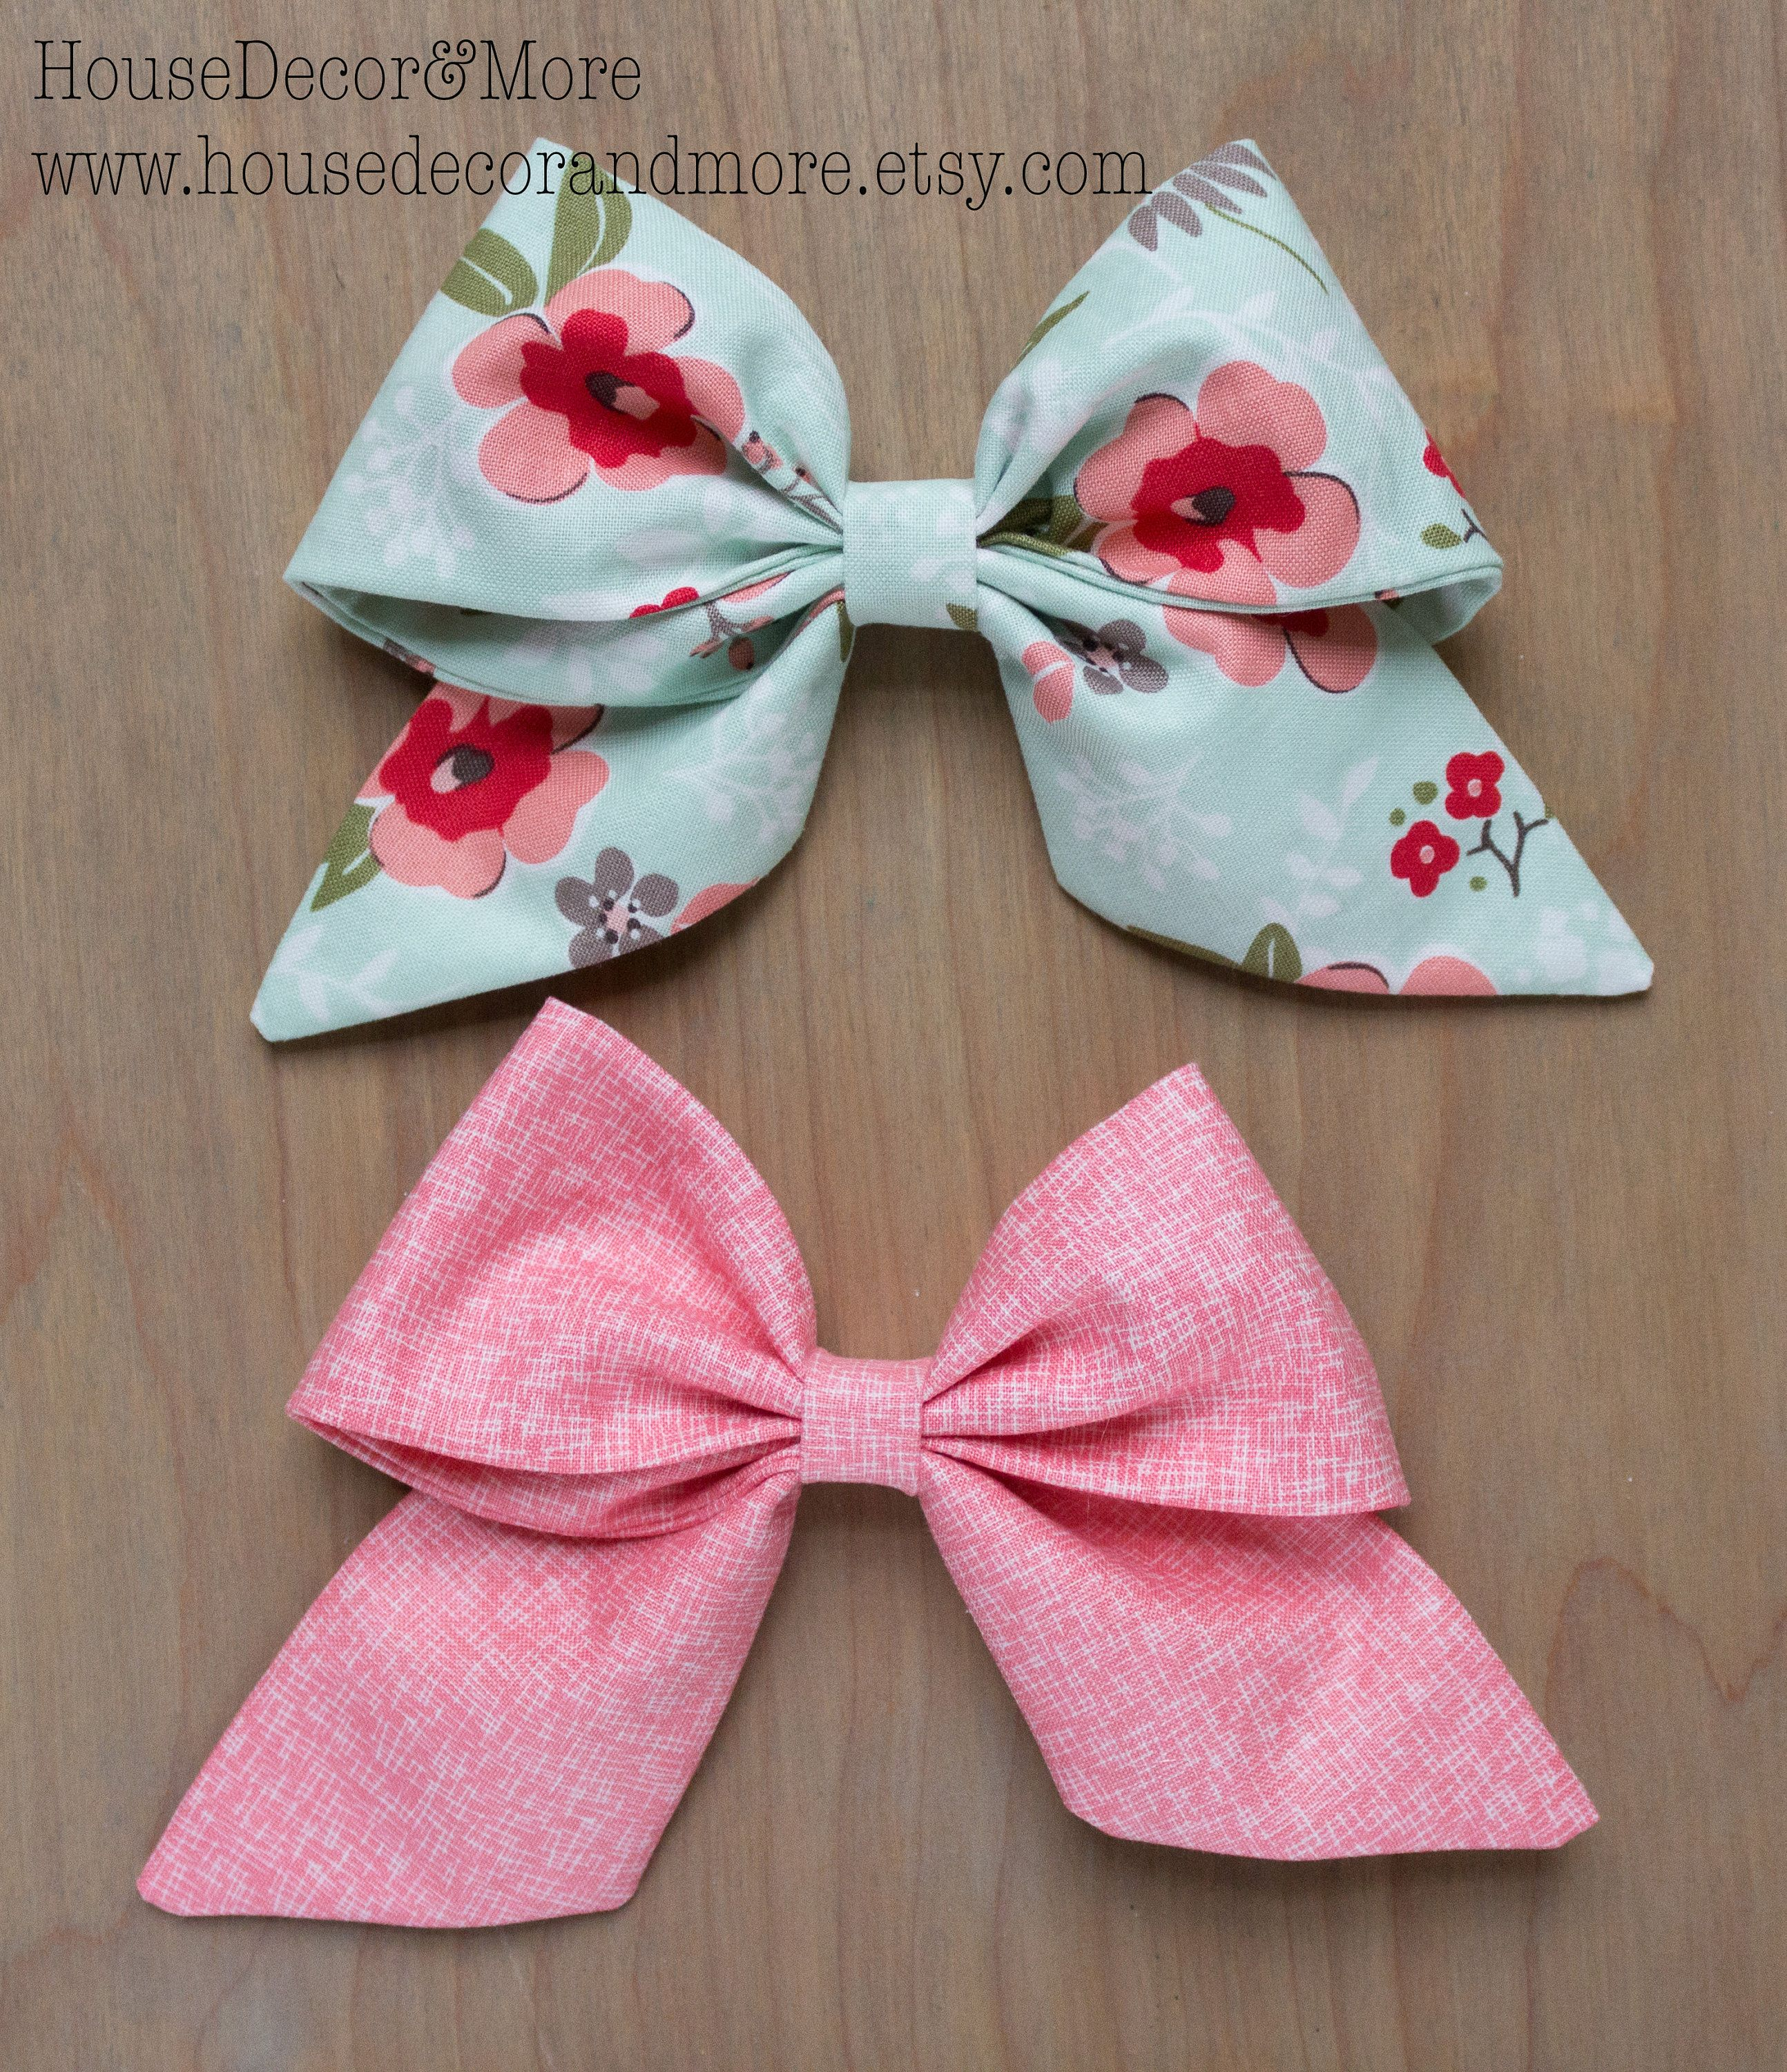 Girls Large Fabric Hair Bow - Set of 2 Fabric Hair Bows- Toddler Fabric Hair Bows - Birthday Hair Bows